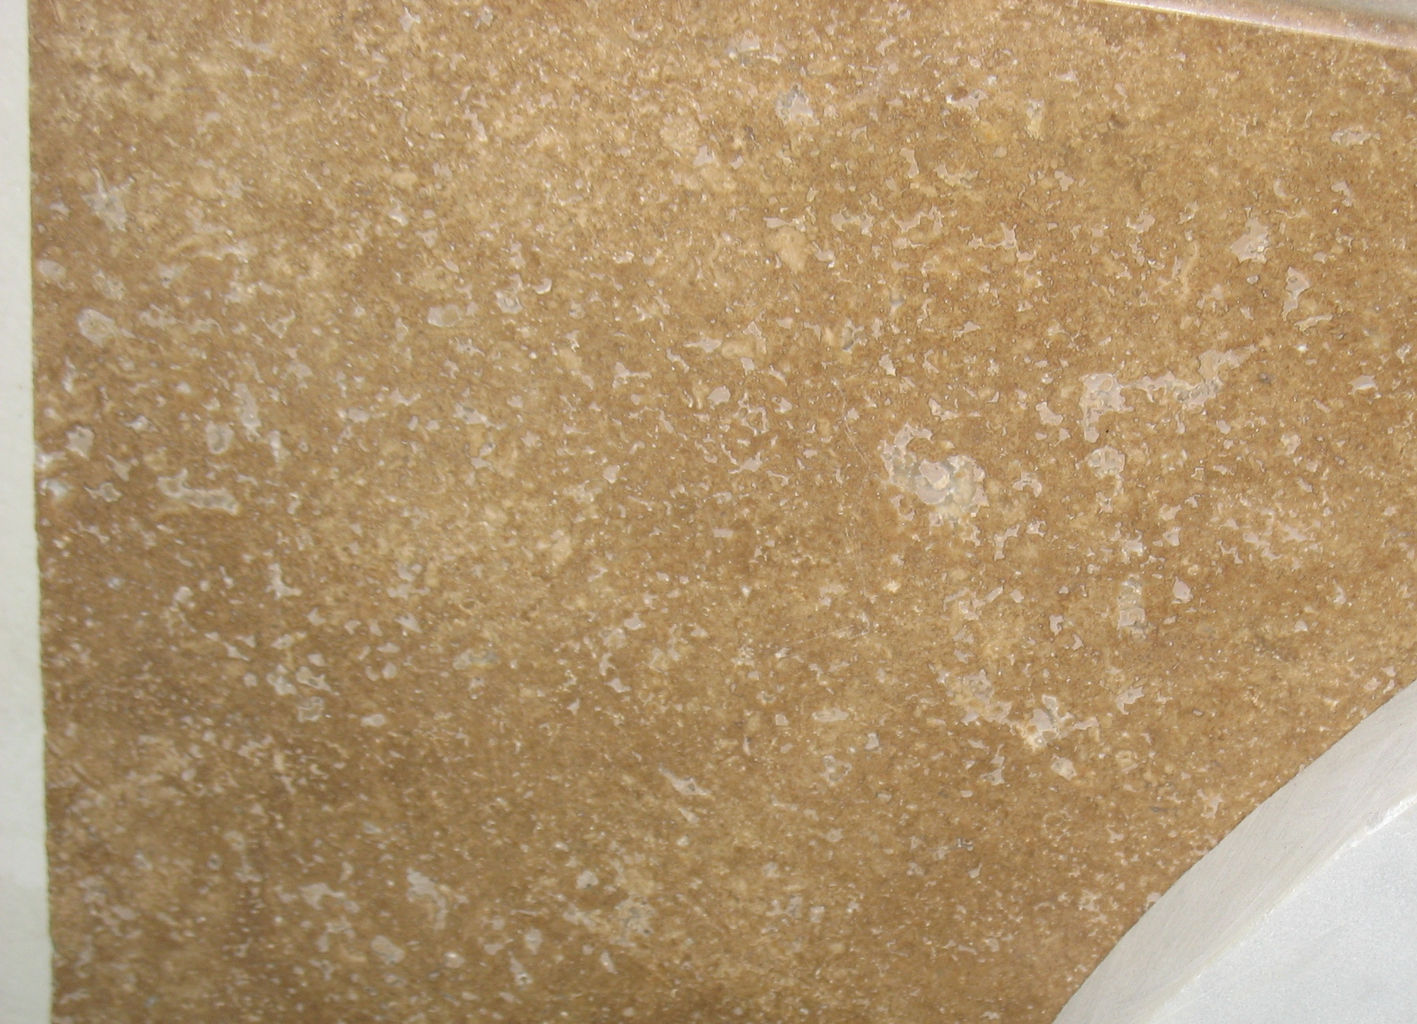 Noce travertine.JPG